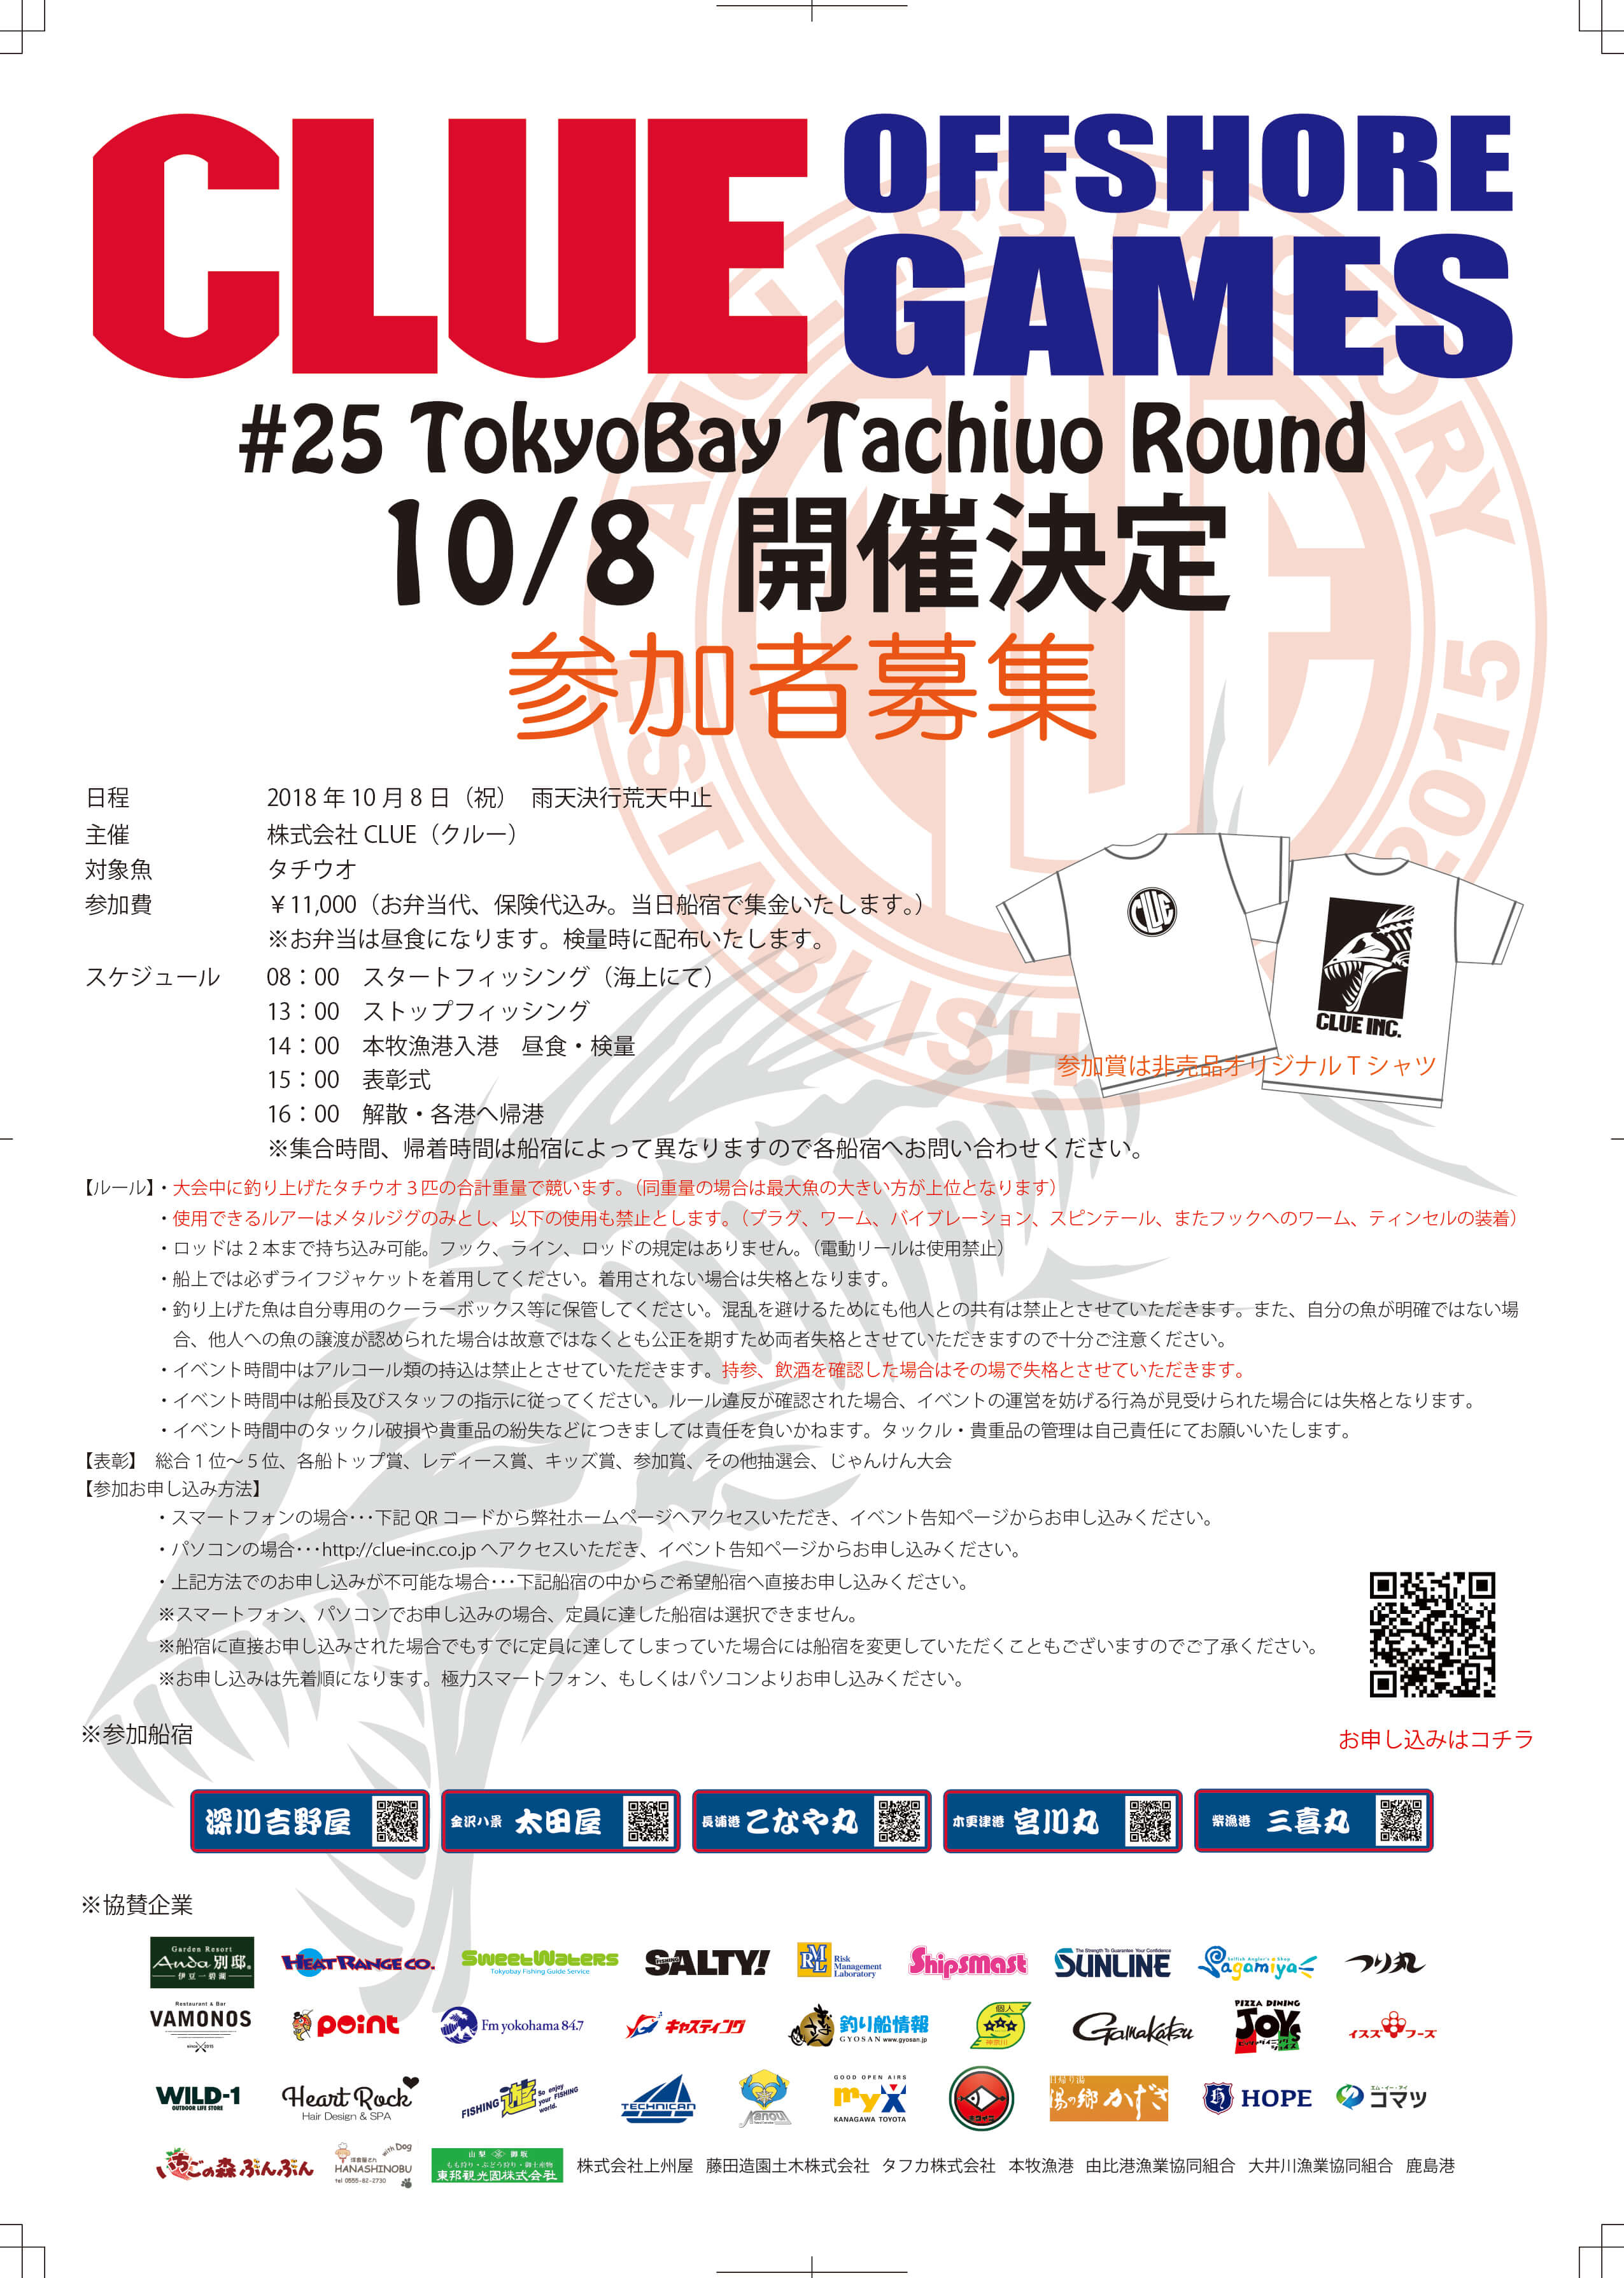 CLUE OFFSHORE GAMES#25東京湾タチウオ大会は9/4 12:00より開始します。